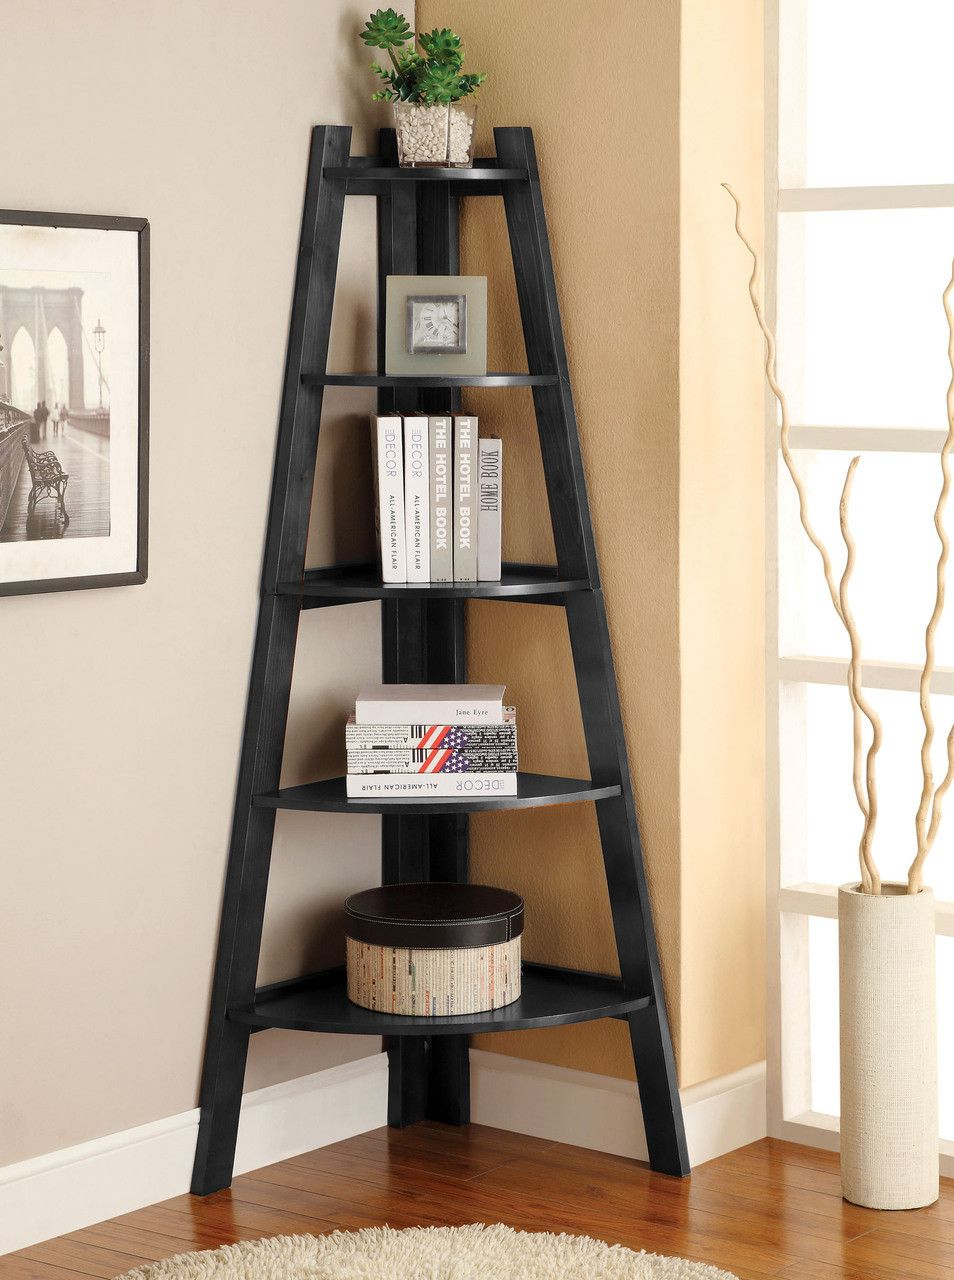 I Like This For Game Display In The Living Room, On Either Side (or Both)  Of The New French Doors? Furniture Of America Kiki Corner Ladder Display  Bookcase ...